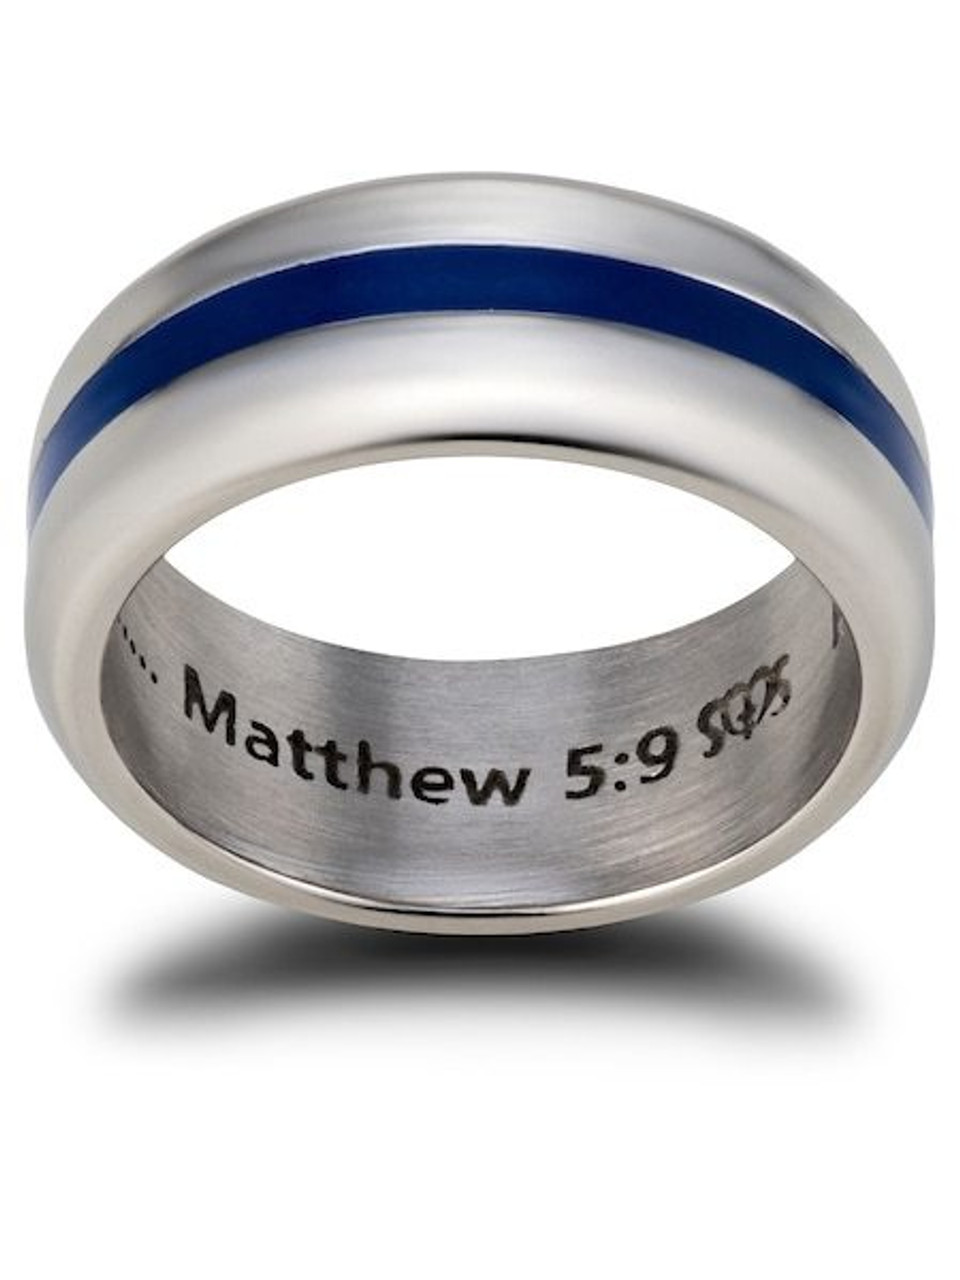 Modern Style North Arrow Shop Black Stainless Steel Bible Verse Ring Matthew 5:8 Purity